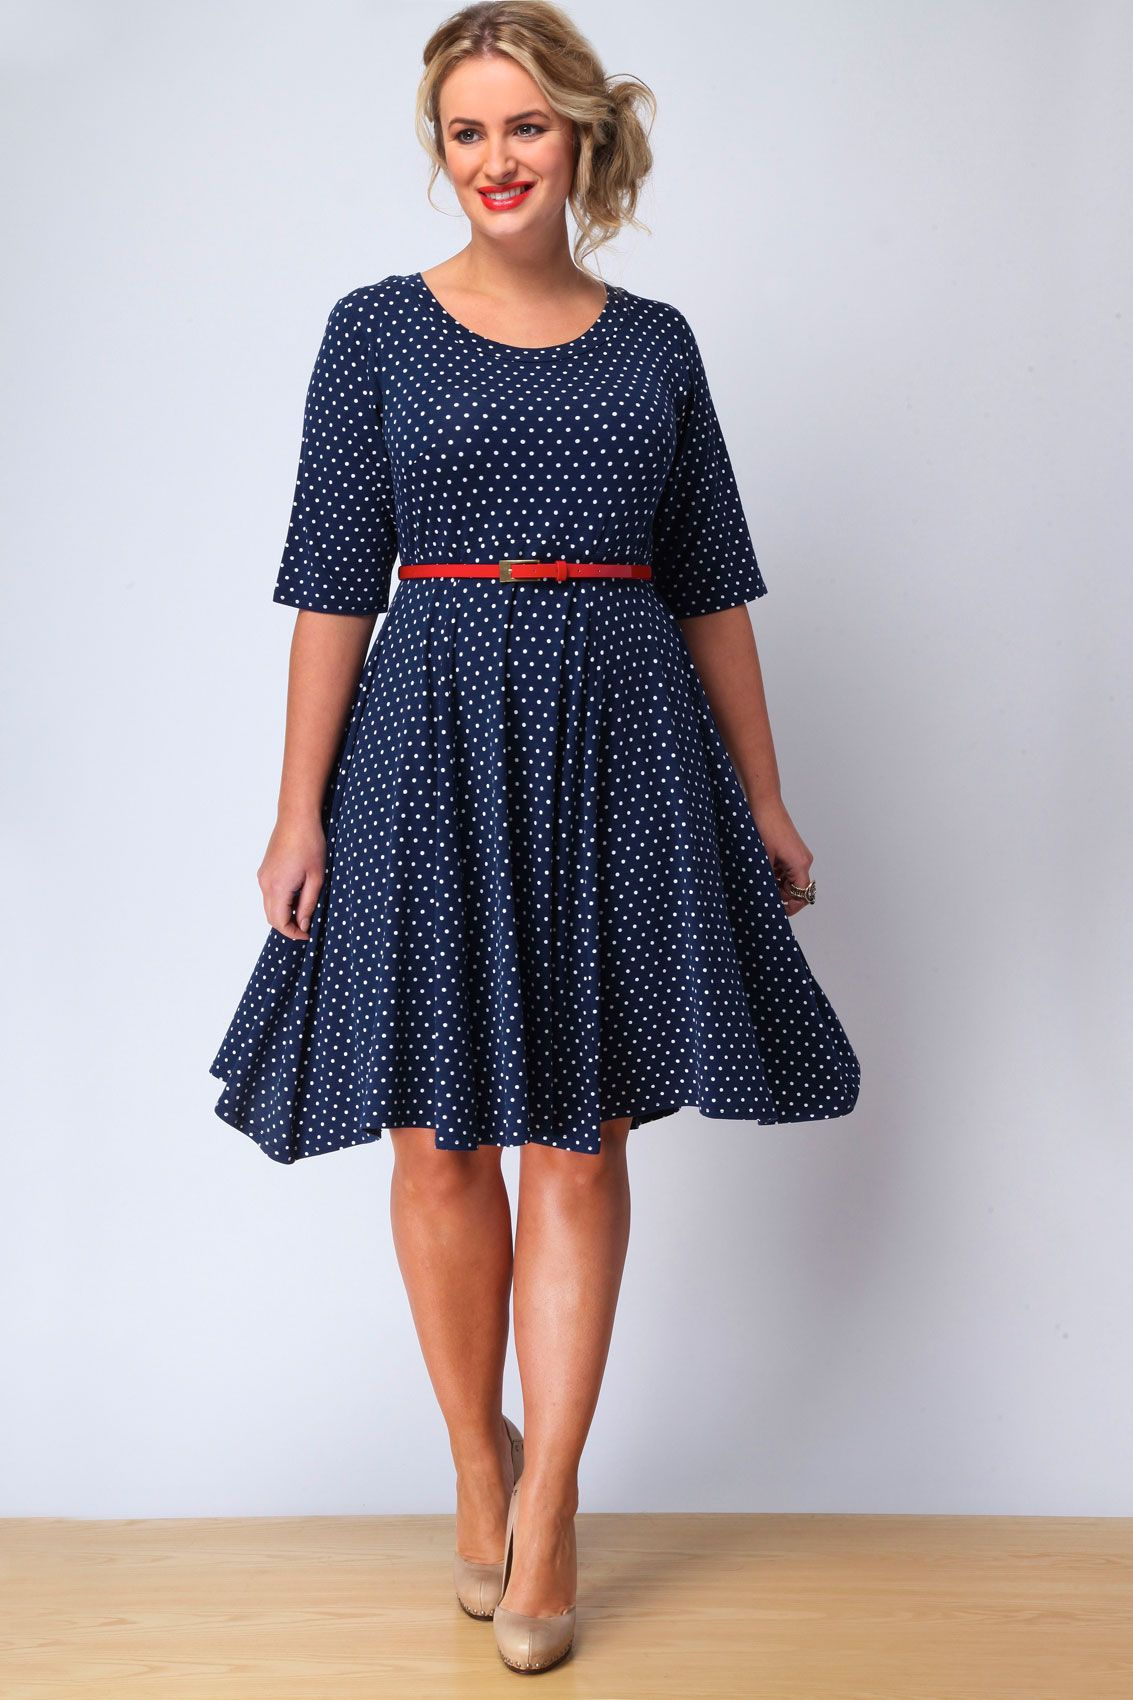 bb351a1956 Cute polkadot fit-and-flare dress from Yours.